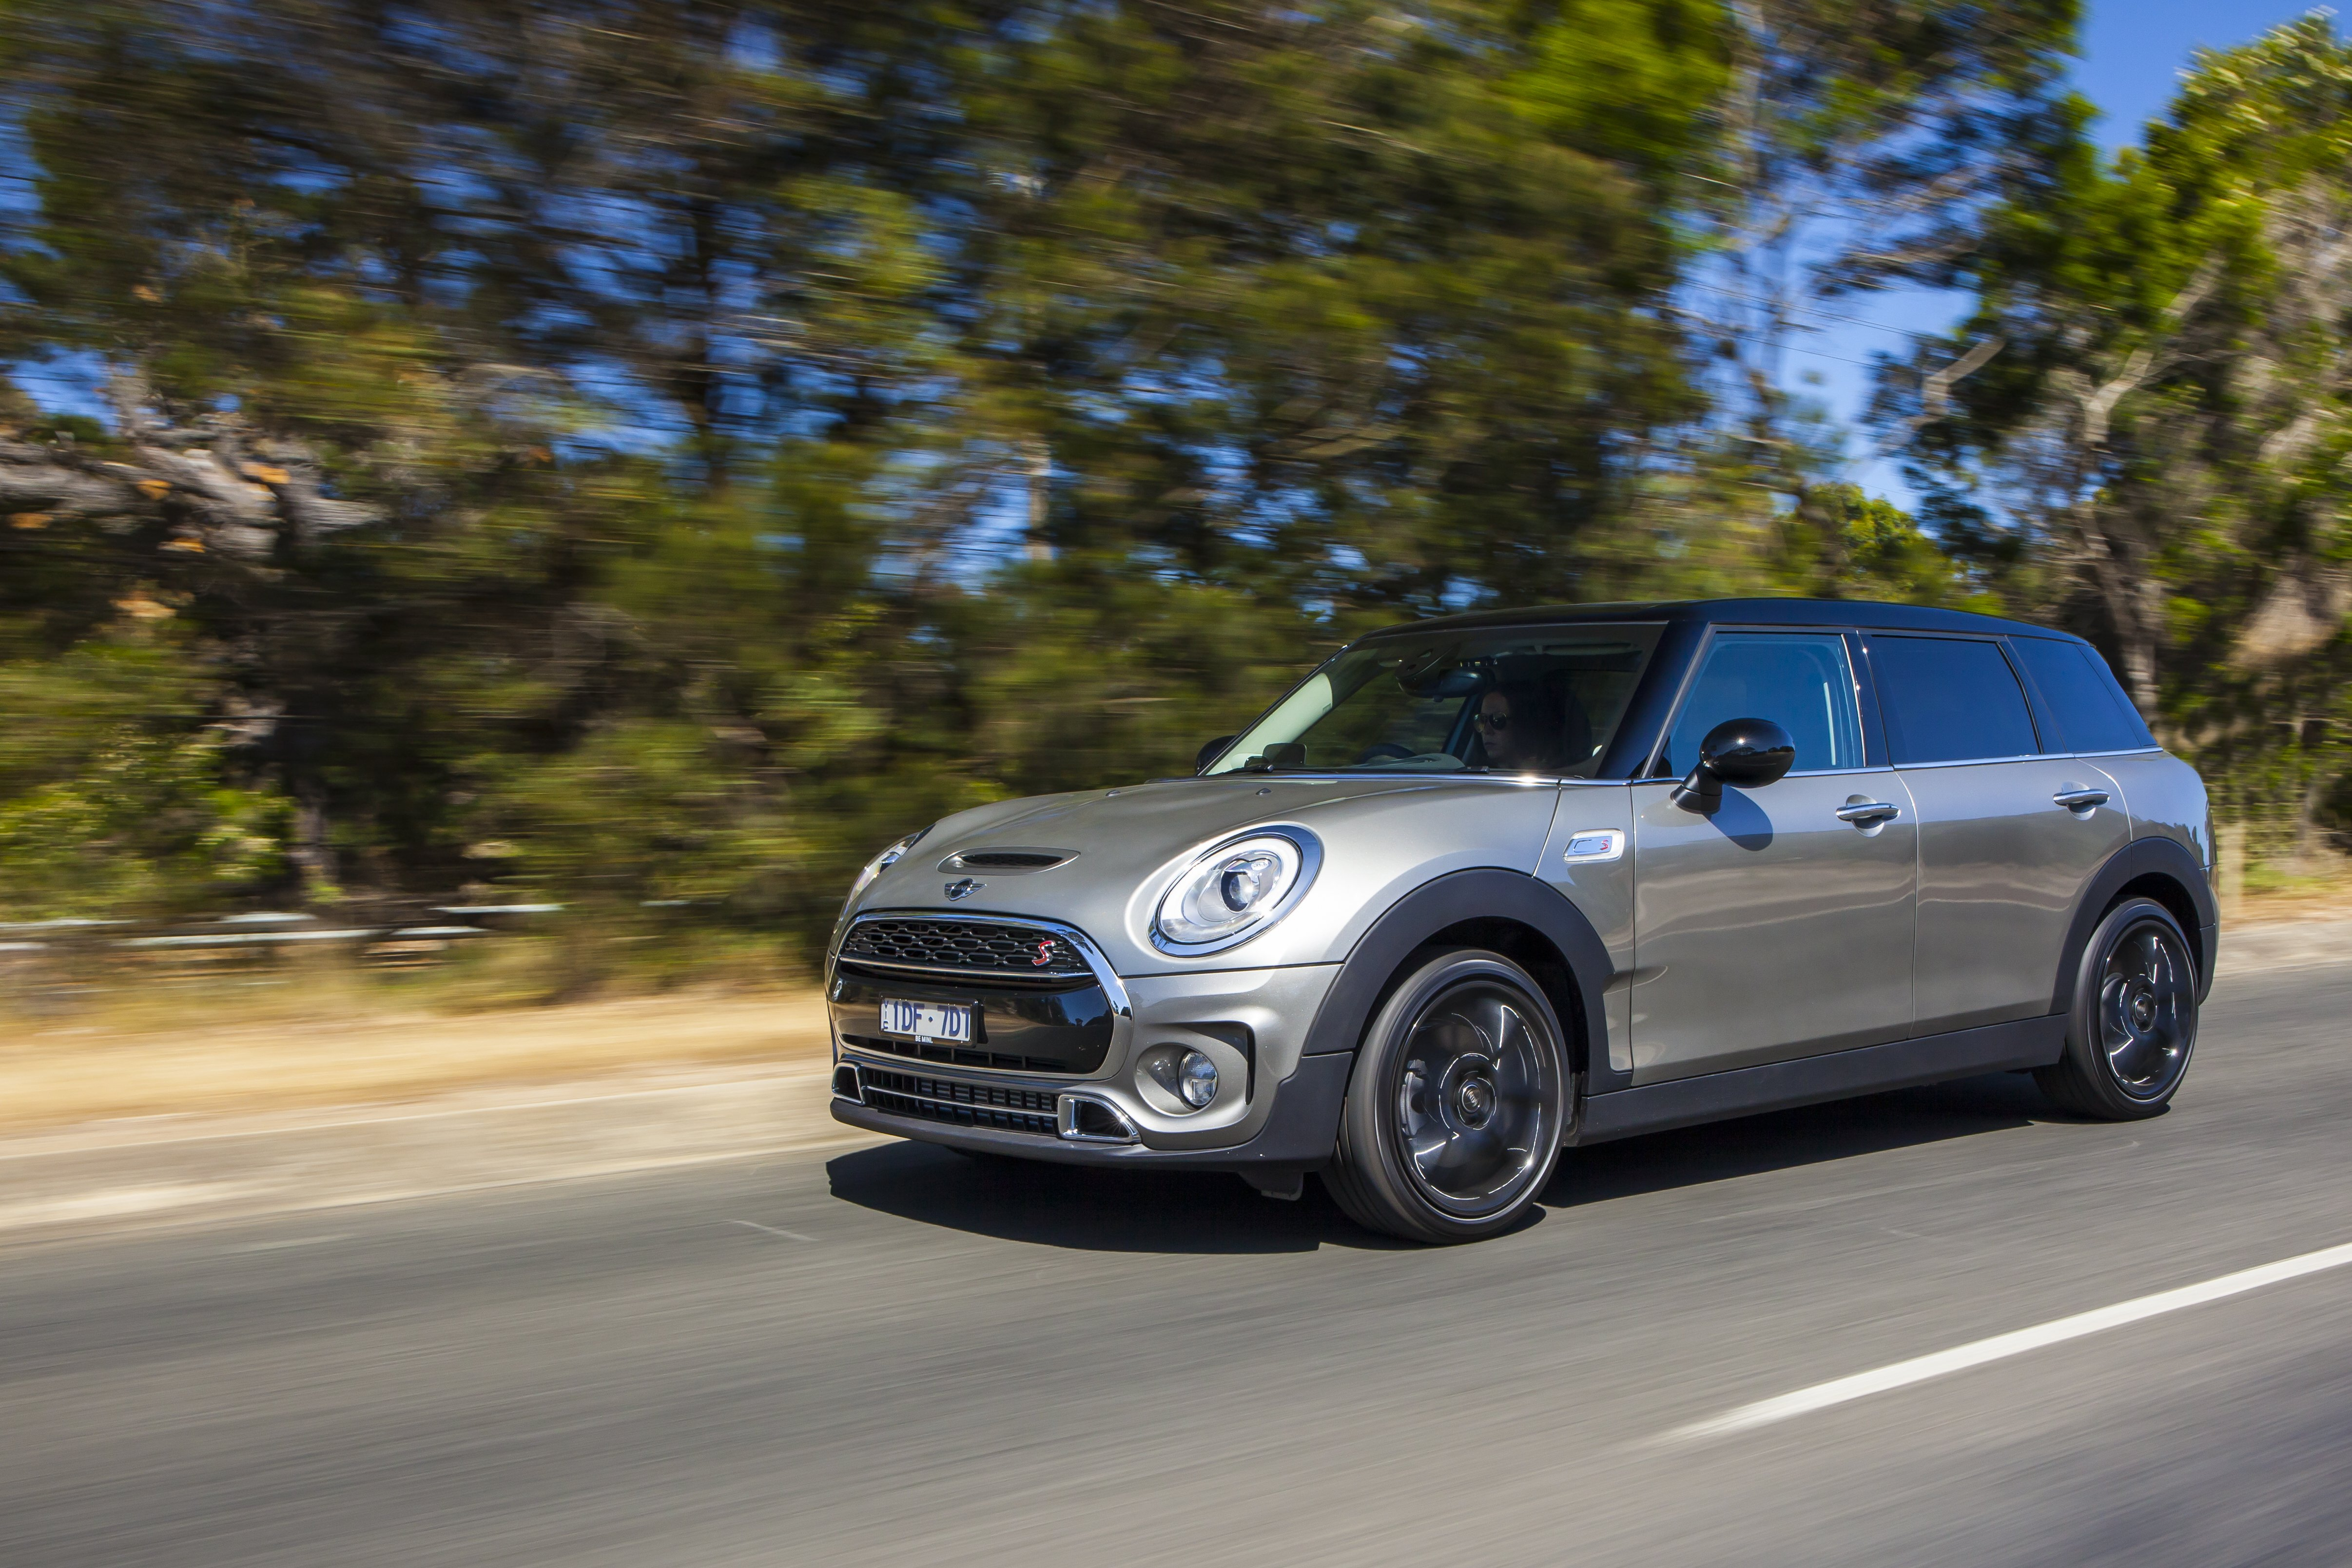 MINI One Clubman mod model